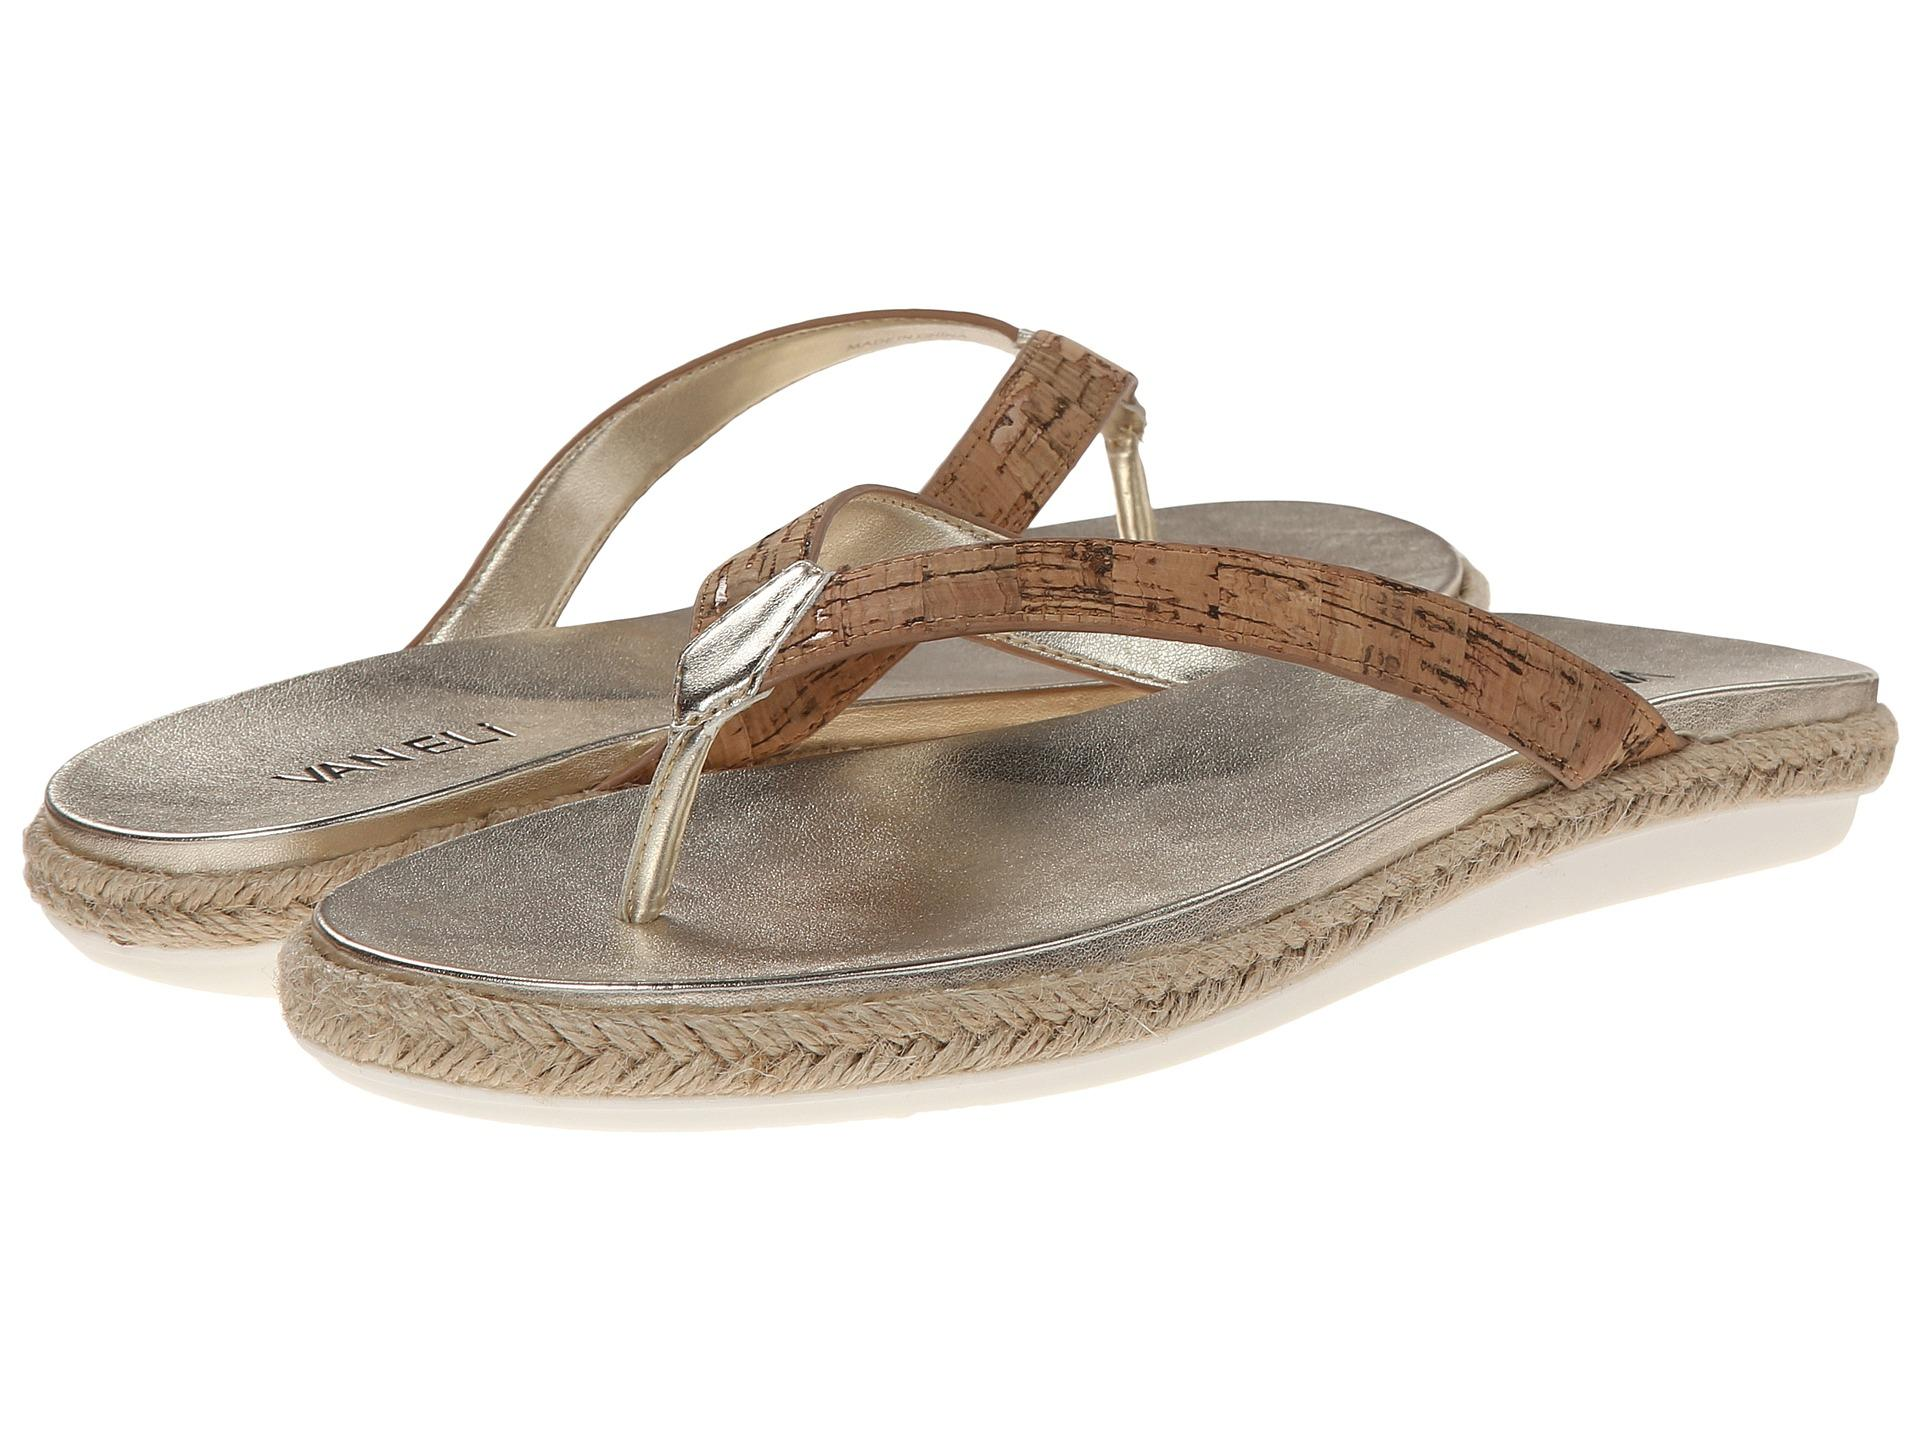 Womens Sandals Vaneli Bryce Natural Cork